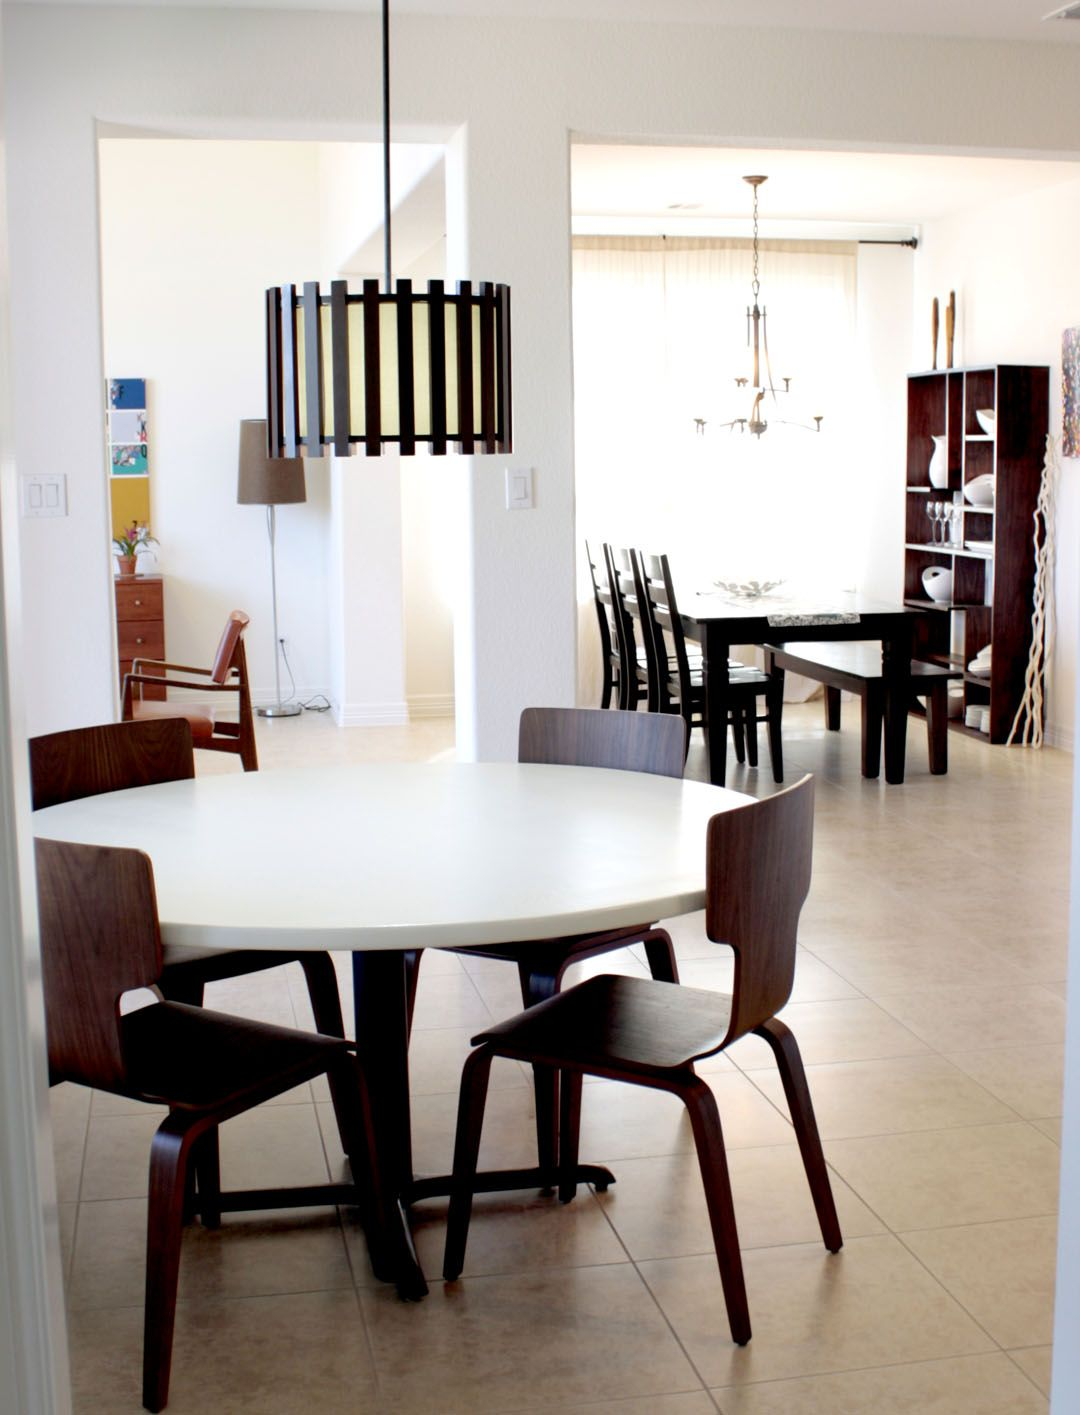 It's Neat to have a Seat. Home, Home decor, Table and chairs